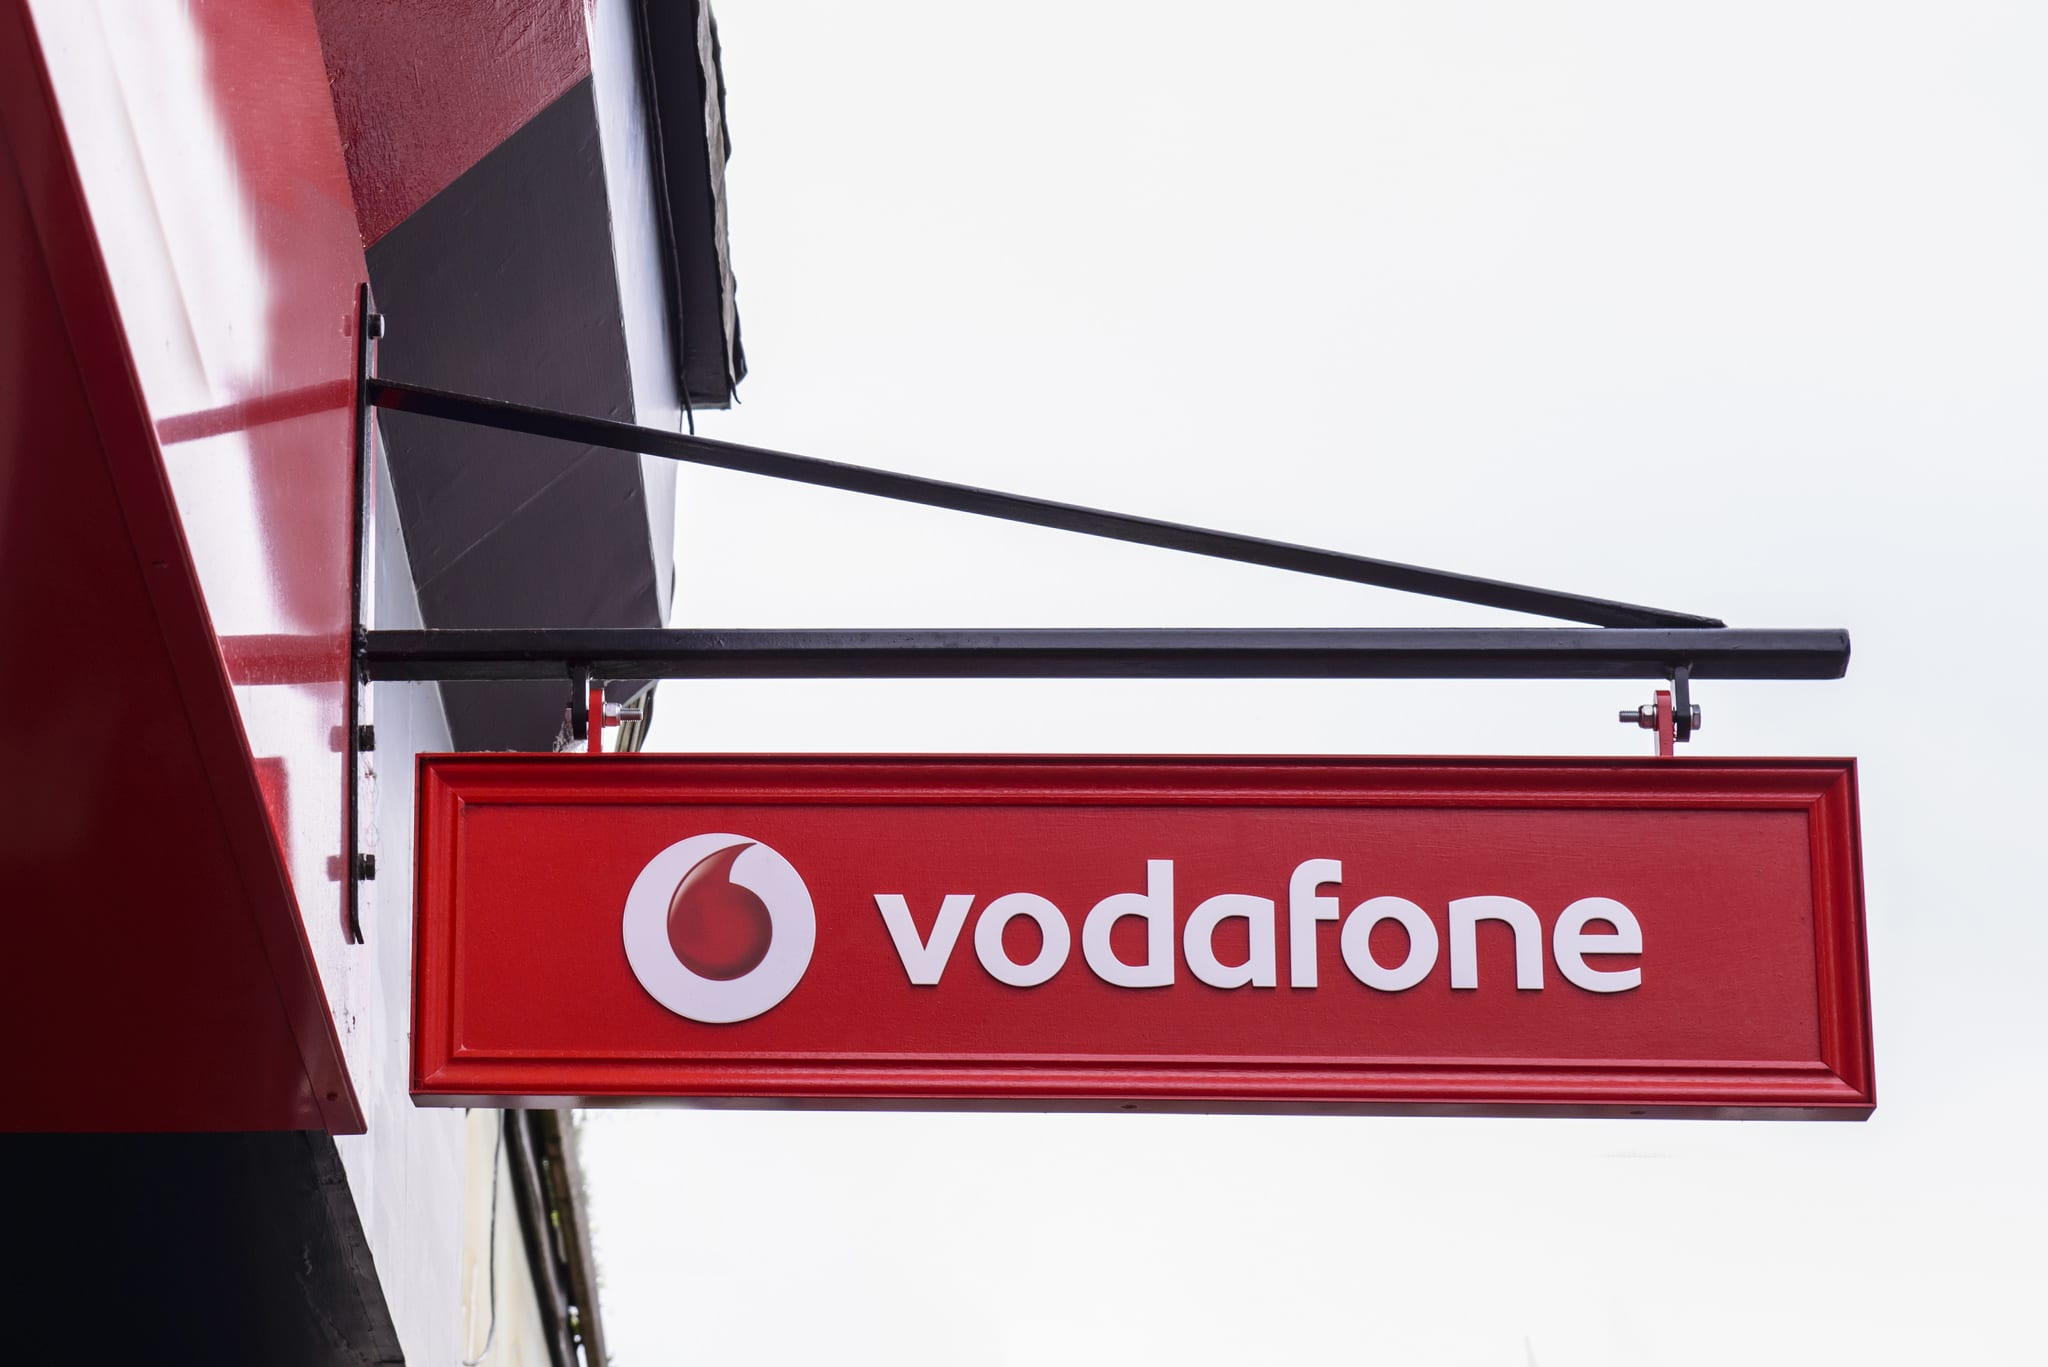 Vodafone turns to artificial intelligence to improve its